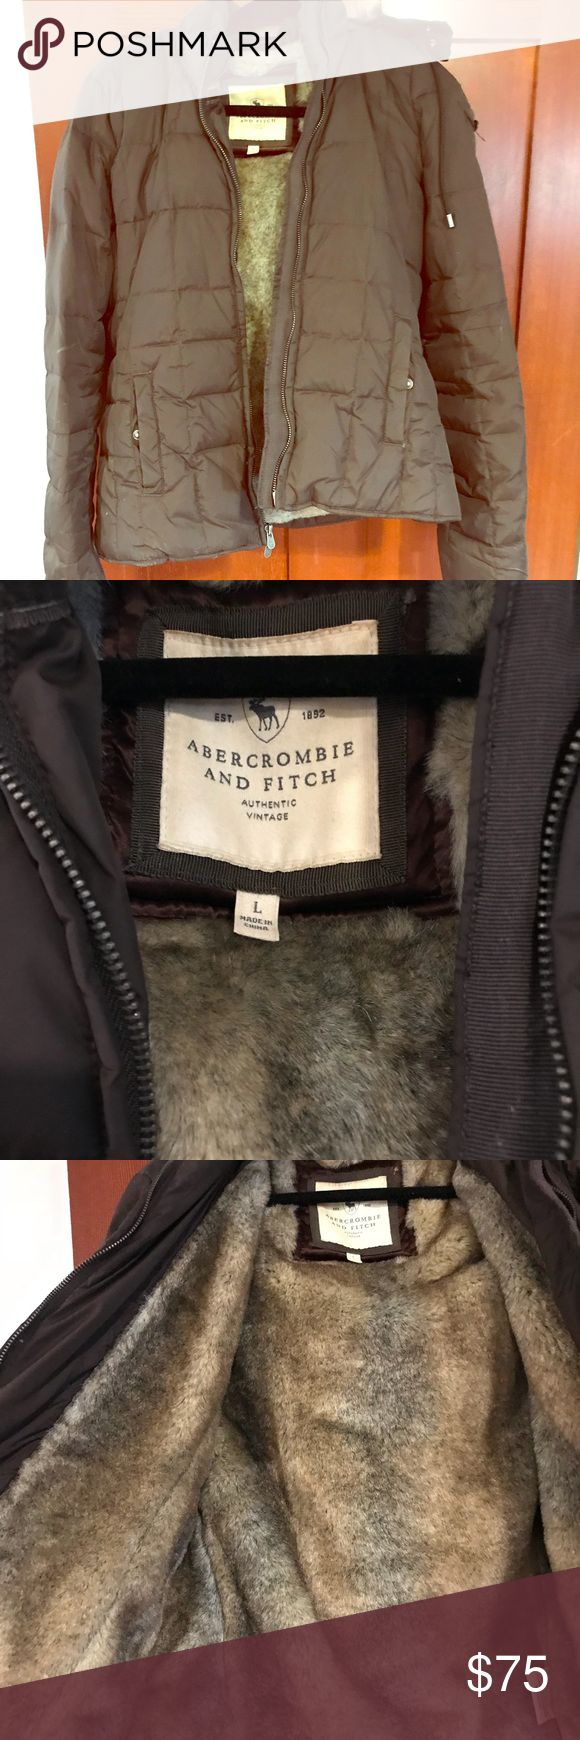 Abercrombie and Fitch Faux Fur Coat Size L, Faux Fur very heavy winter coat. Worn less than 5x. Originally was $300. Abercrombie & Fitch Jackets & Coats